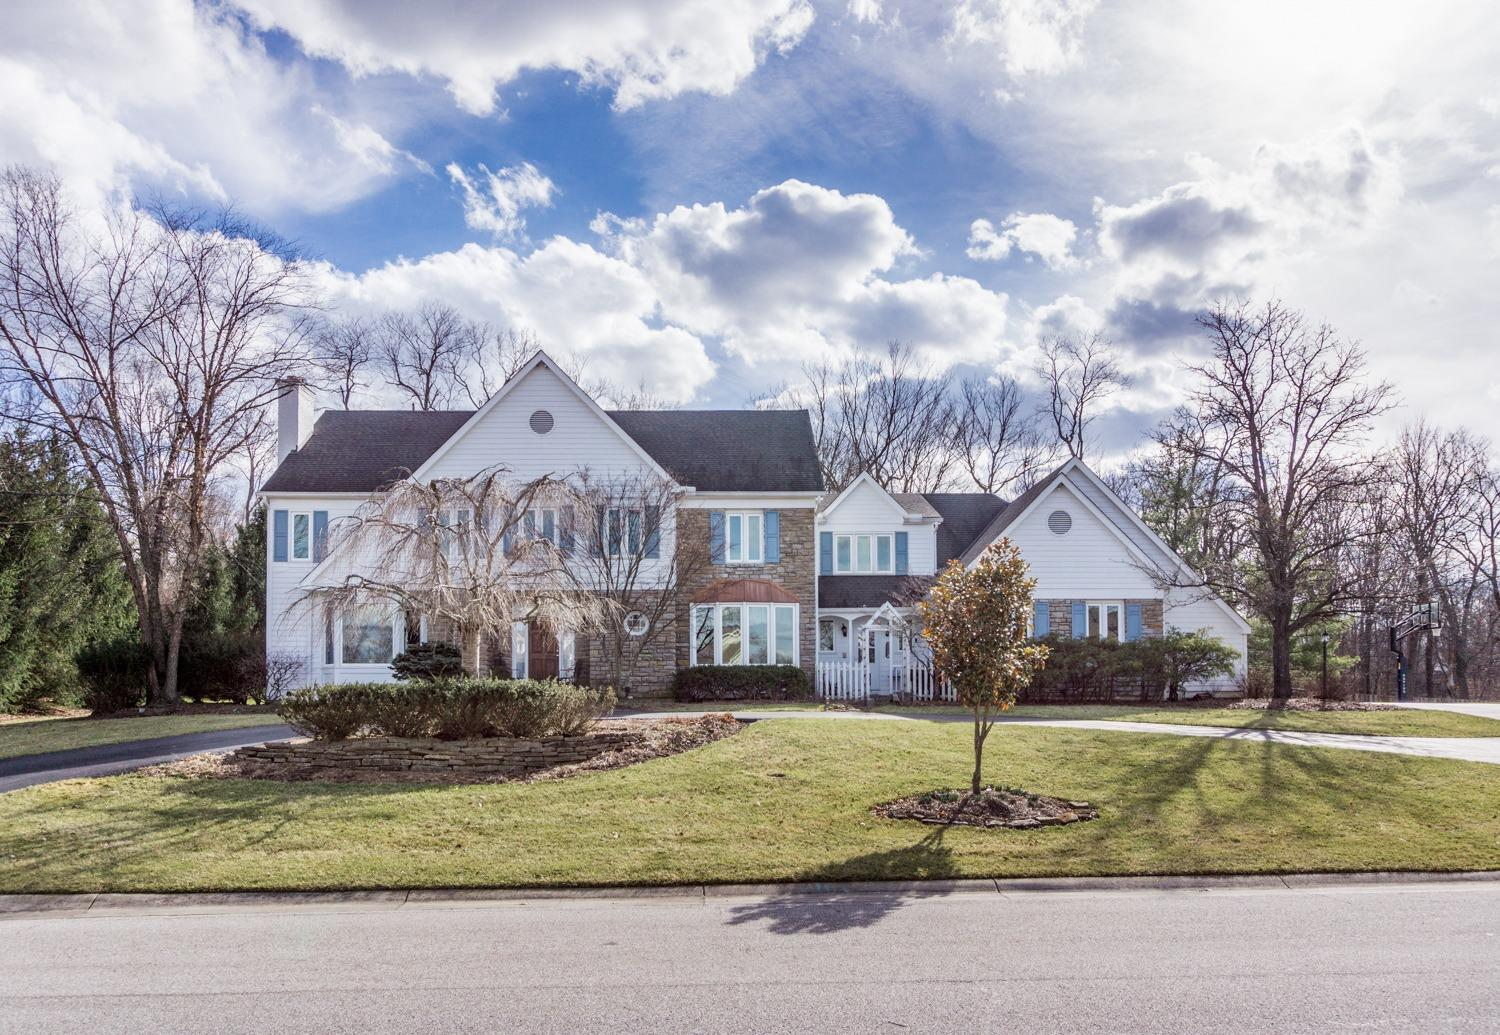 Beautiful executive home in sought after neighborhood! Open floor plan between Kitchen/FR. Gorgeous Study. Great home for entertaining or simply casual & comfortable! Amazing flat backyard complete w/custom waterfall/pond & plenty of room to play! Lower Level could be a Guest Apartment w/kitchenette! Don't miss this! Easy access to Five Mile Trail